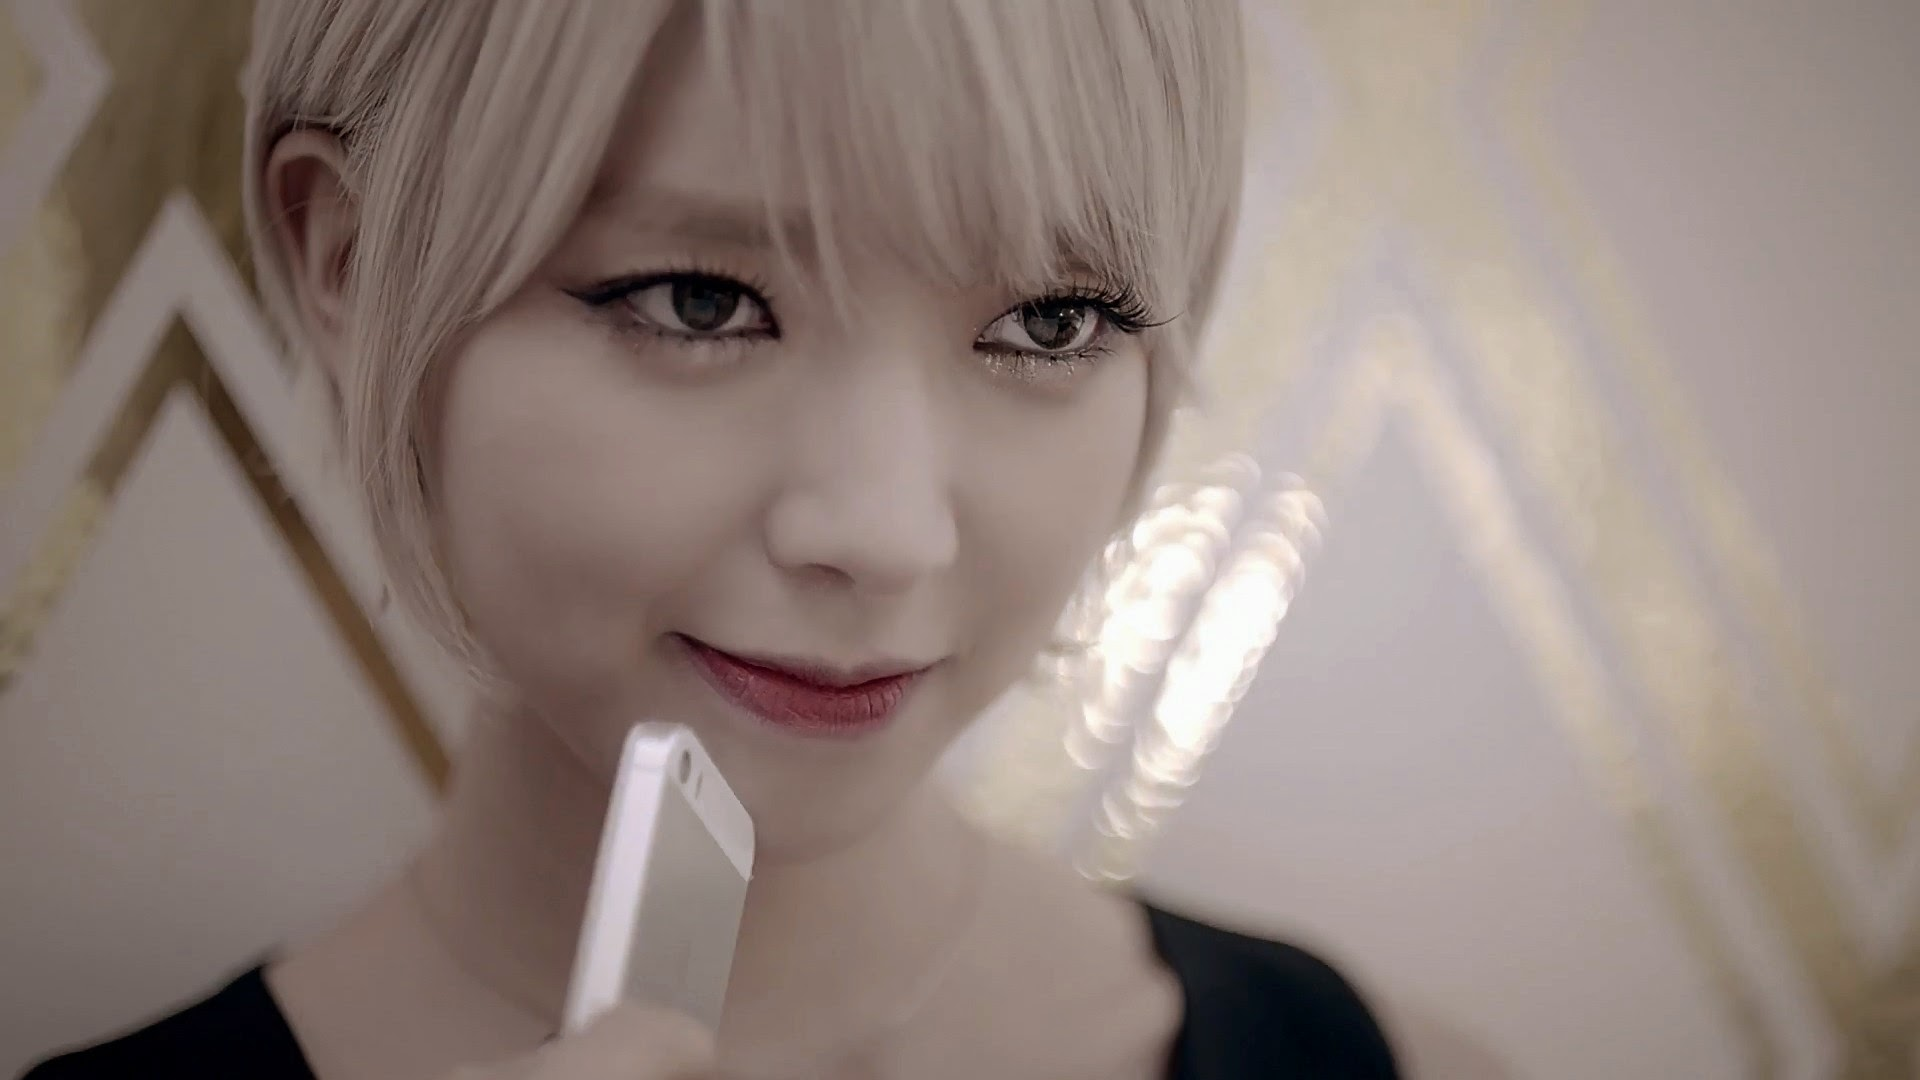 AoA Choa Like A Cat